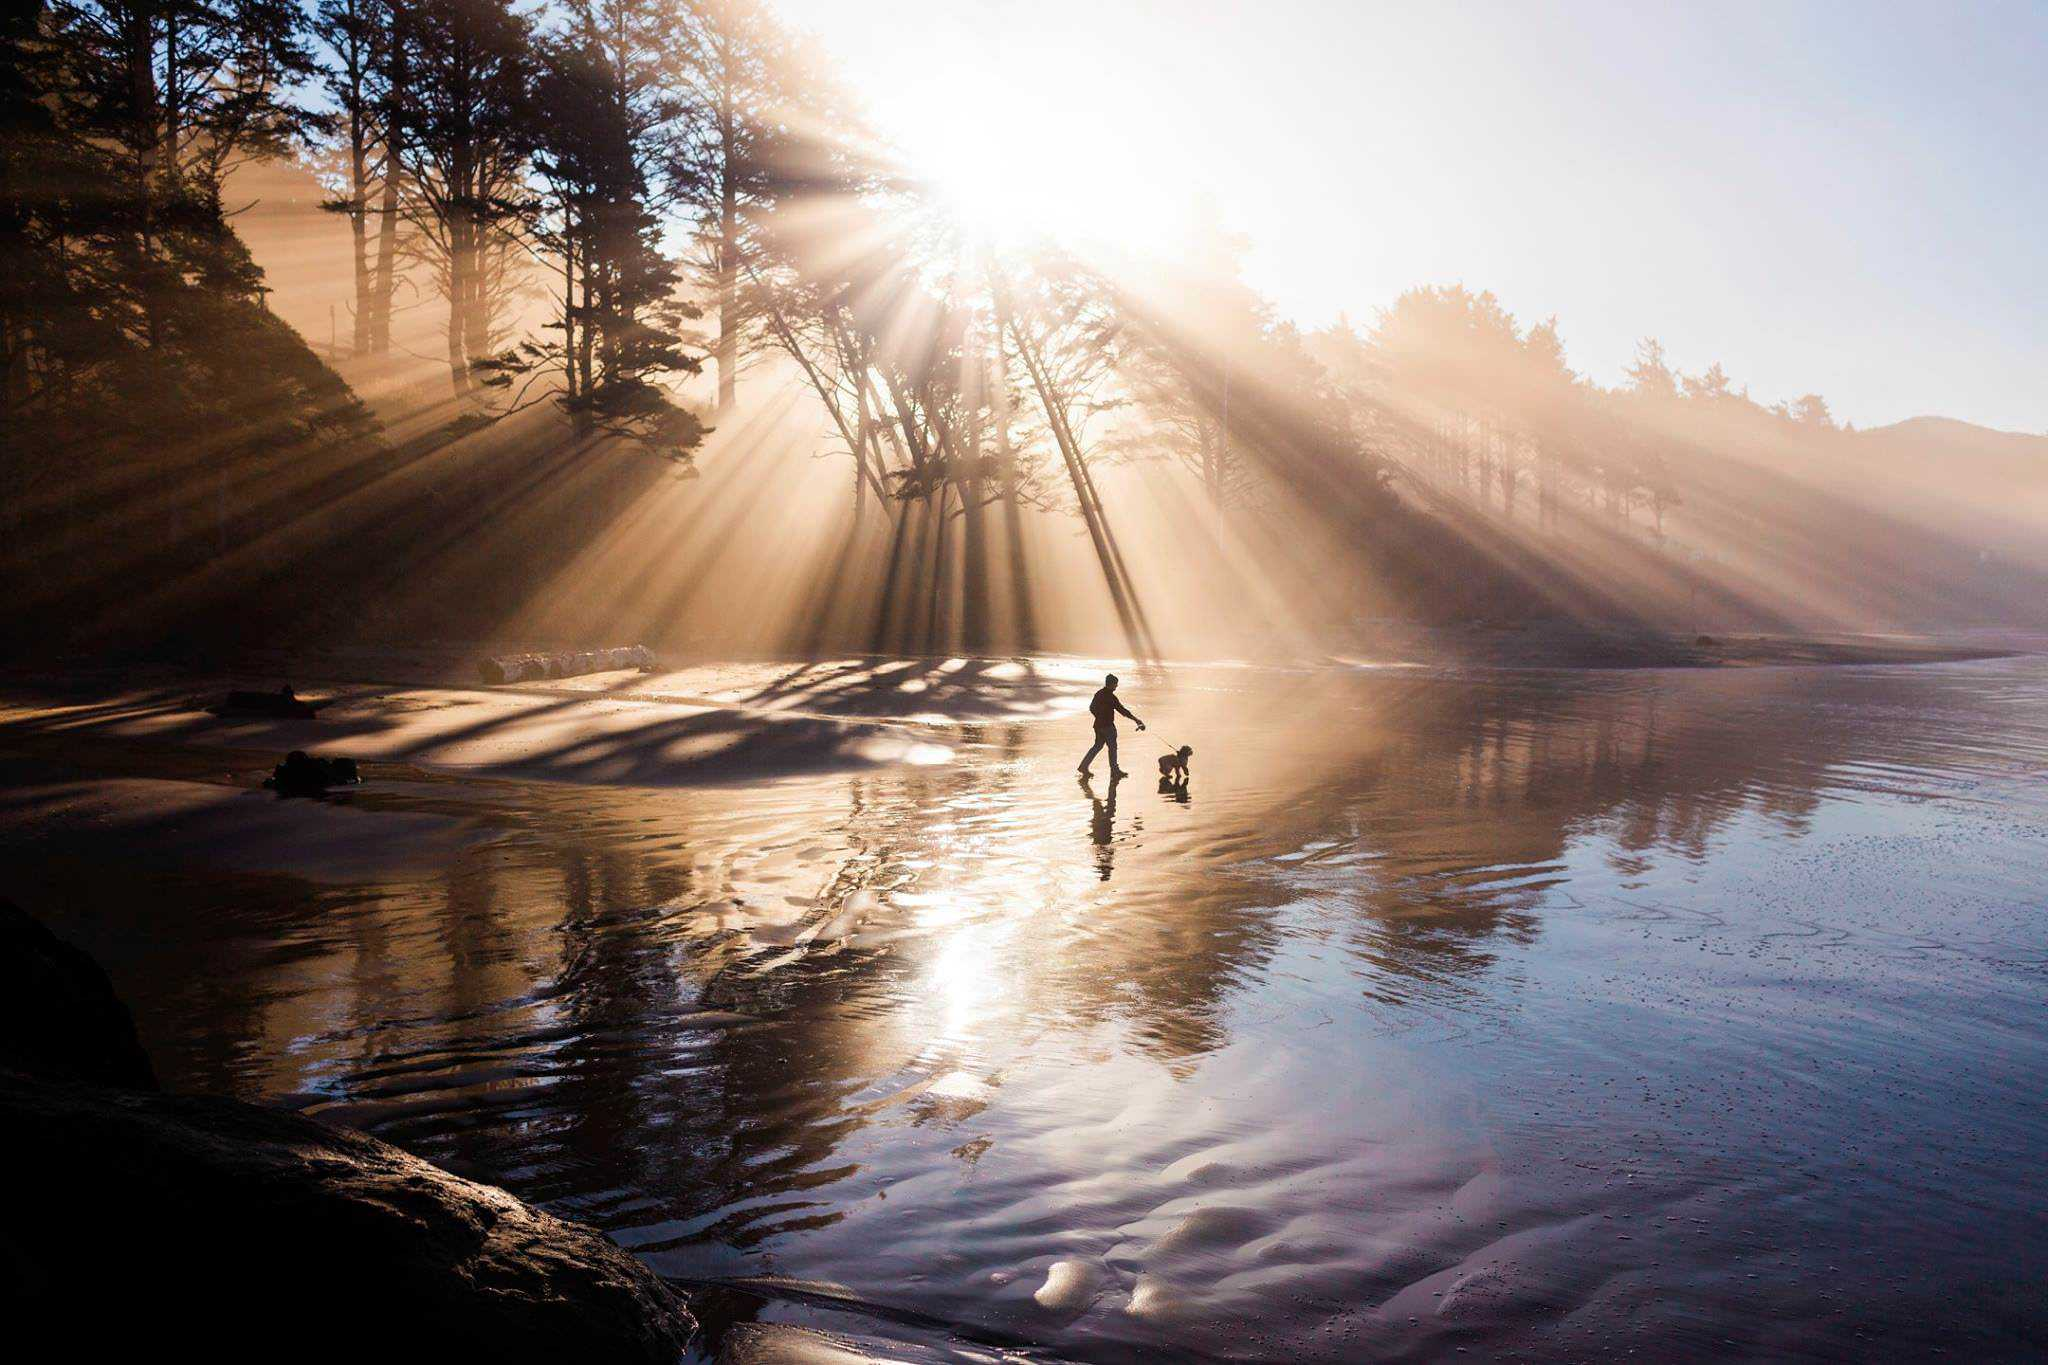 A man is walking with his dog at a beach while the sunbeams shine through the trees.